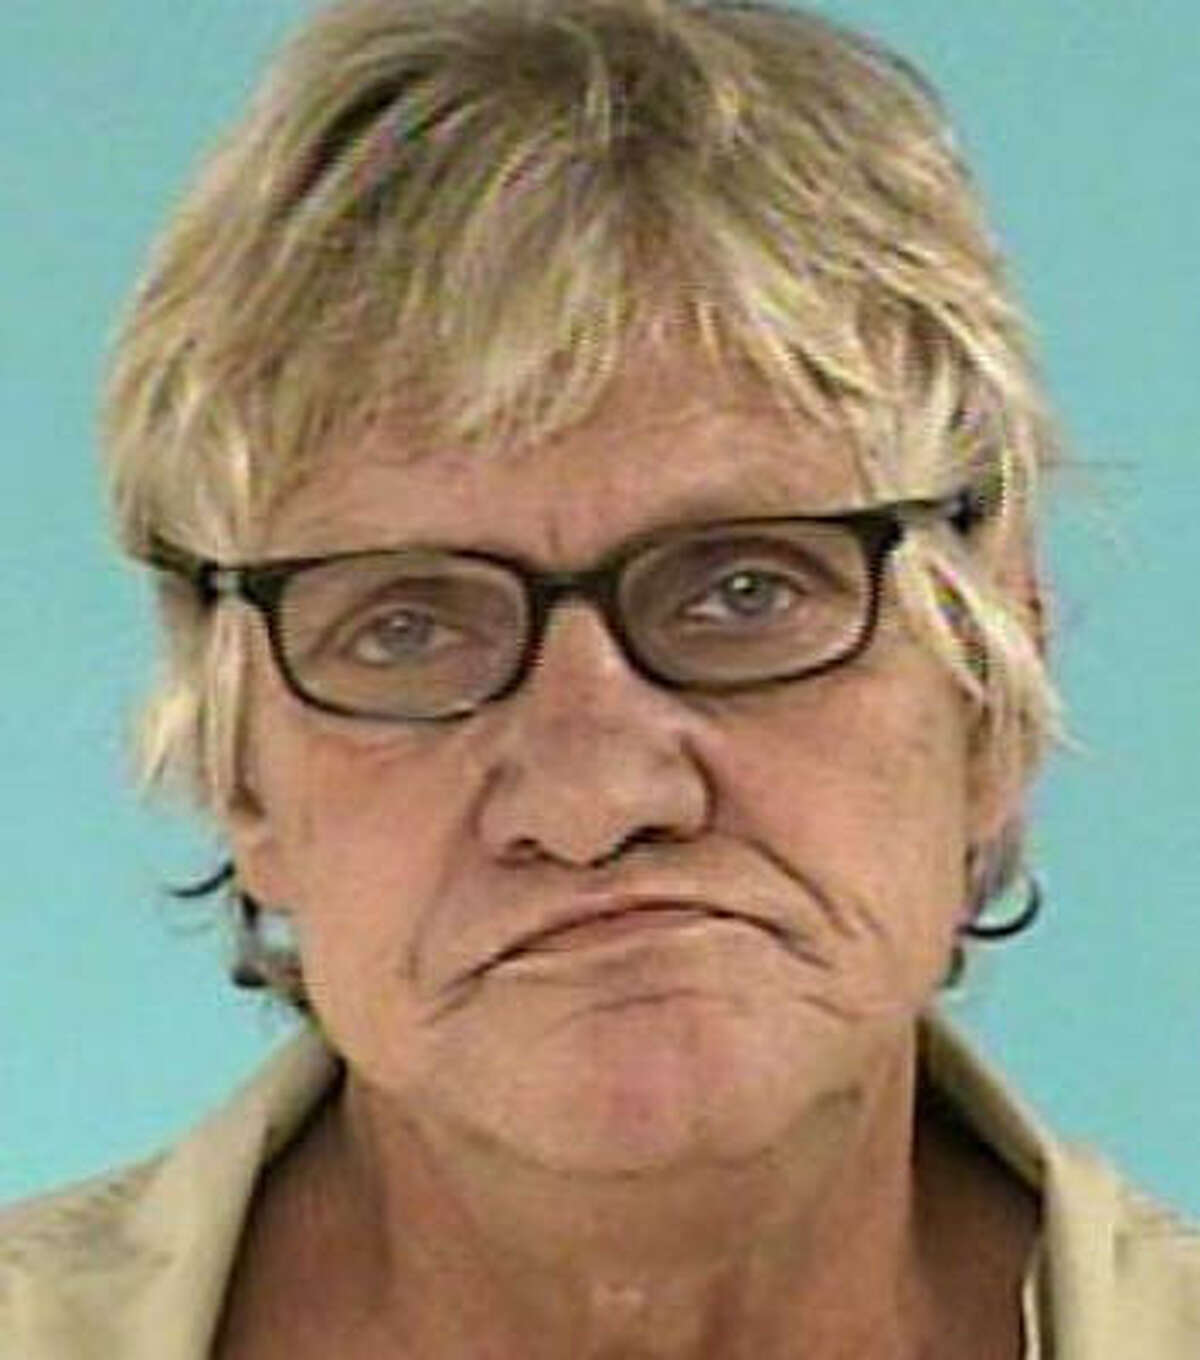 George Larry Harvey has been convicted of drunken driving eight times.